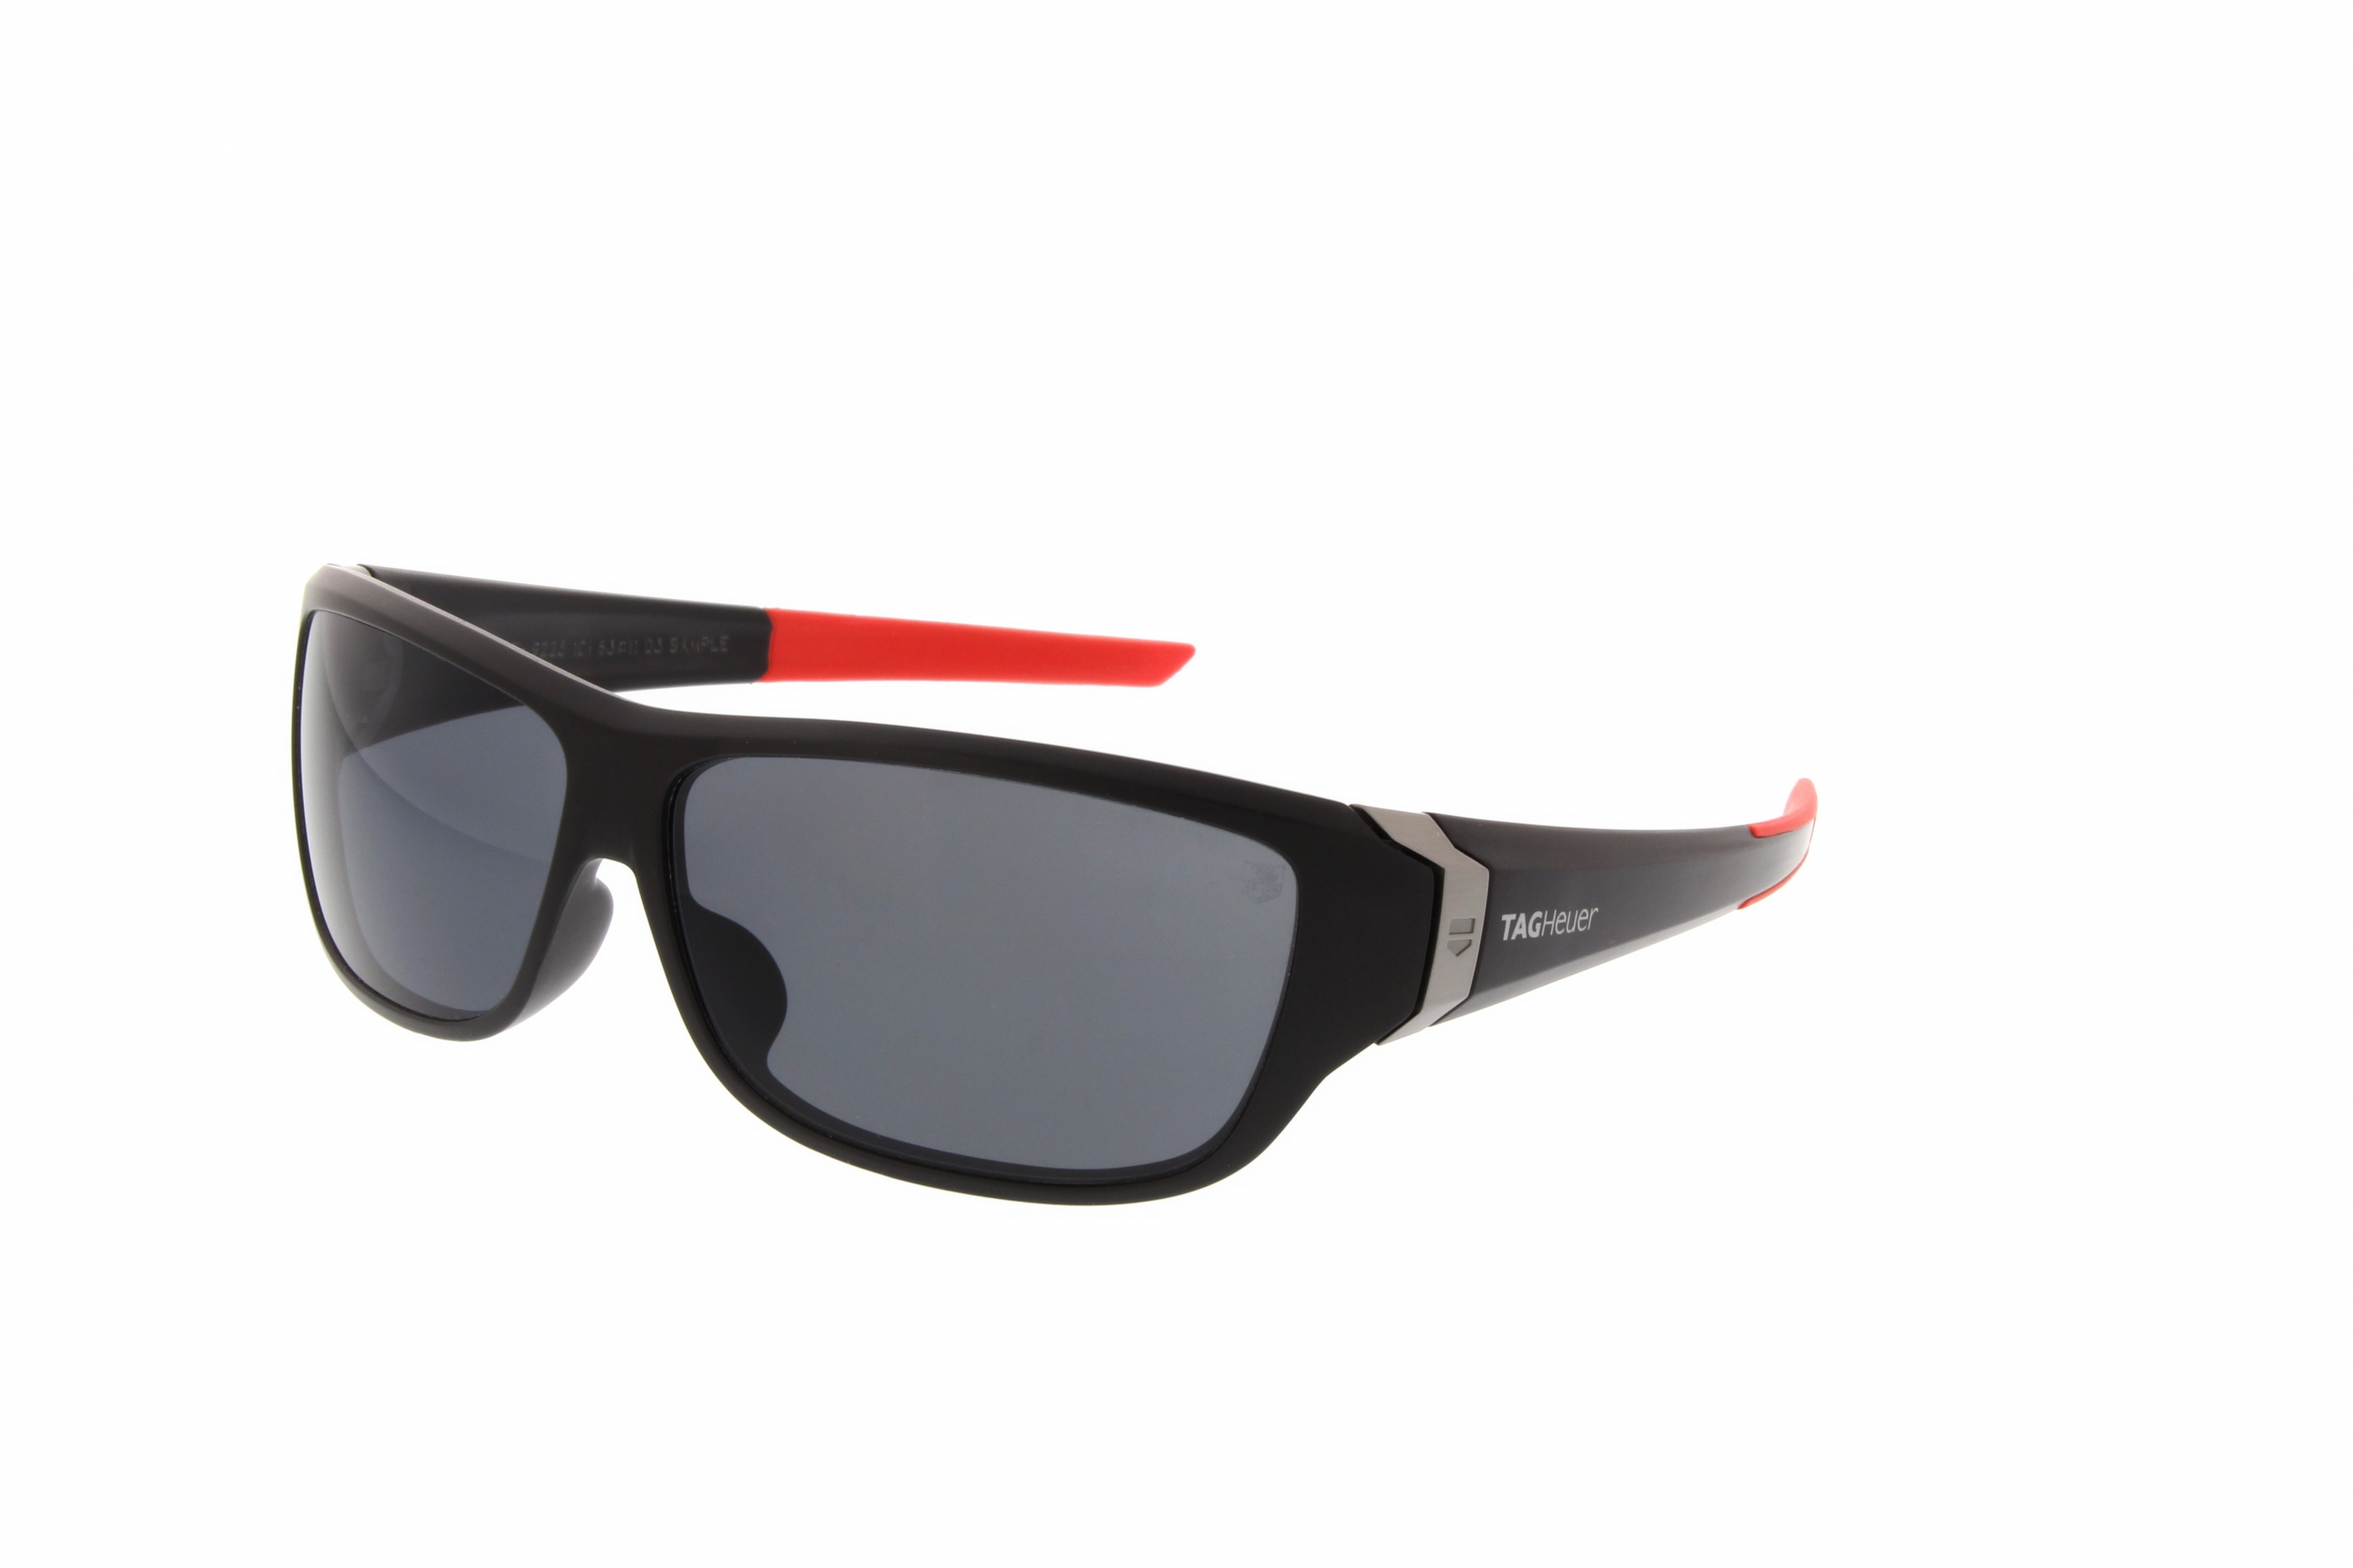 6bd5a62809 Tag Heuer 9225 Racer 2 Sunglasses